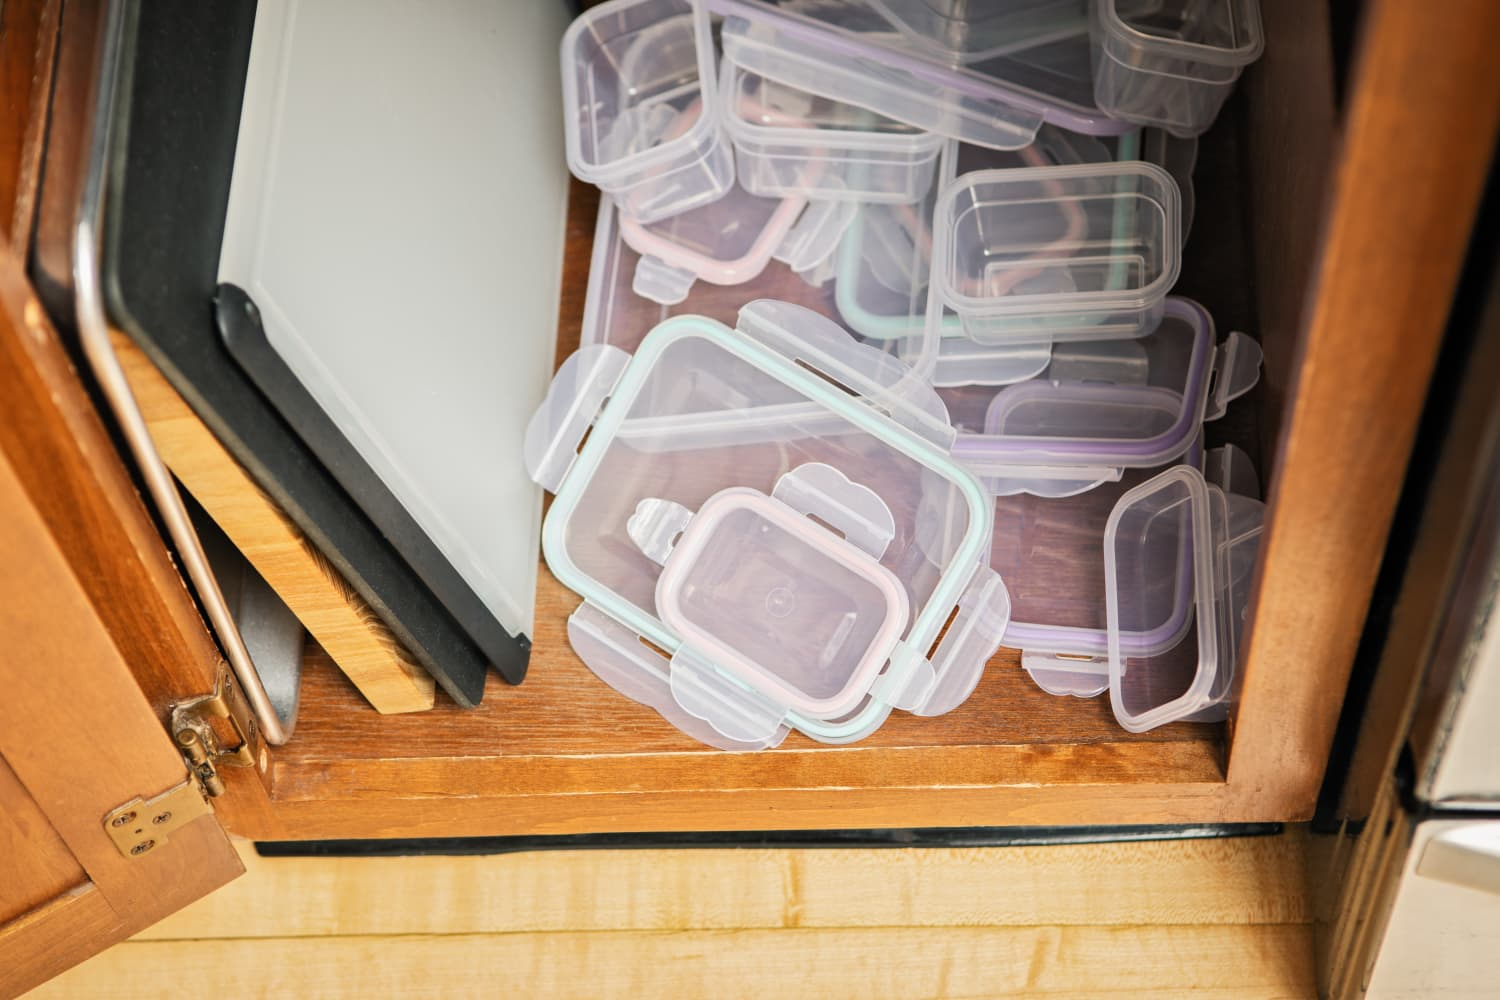 A $10 Mail Organizer Is the Key to Organizing Messy Food Container Lids